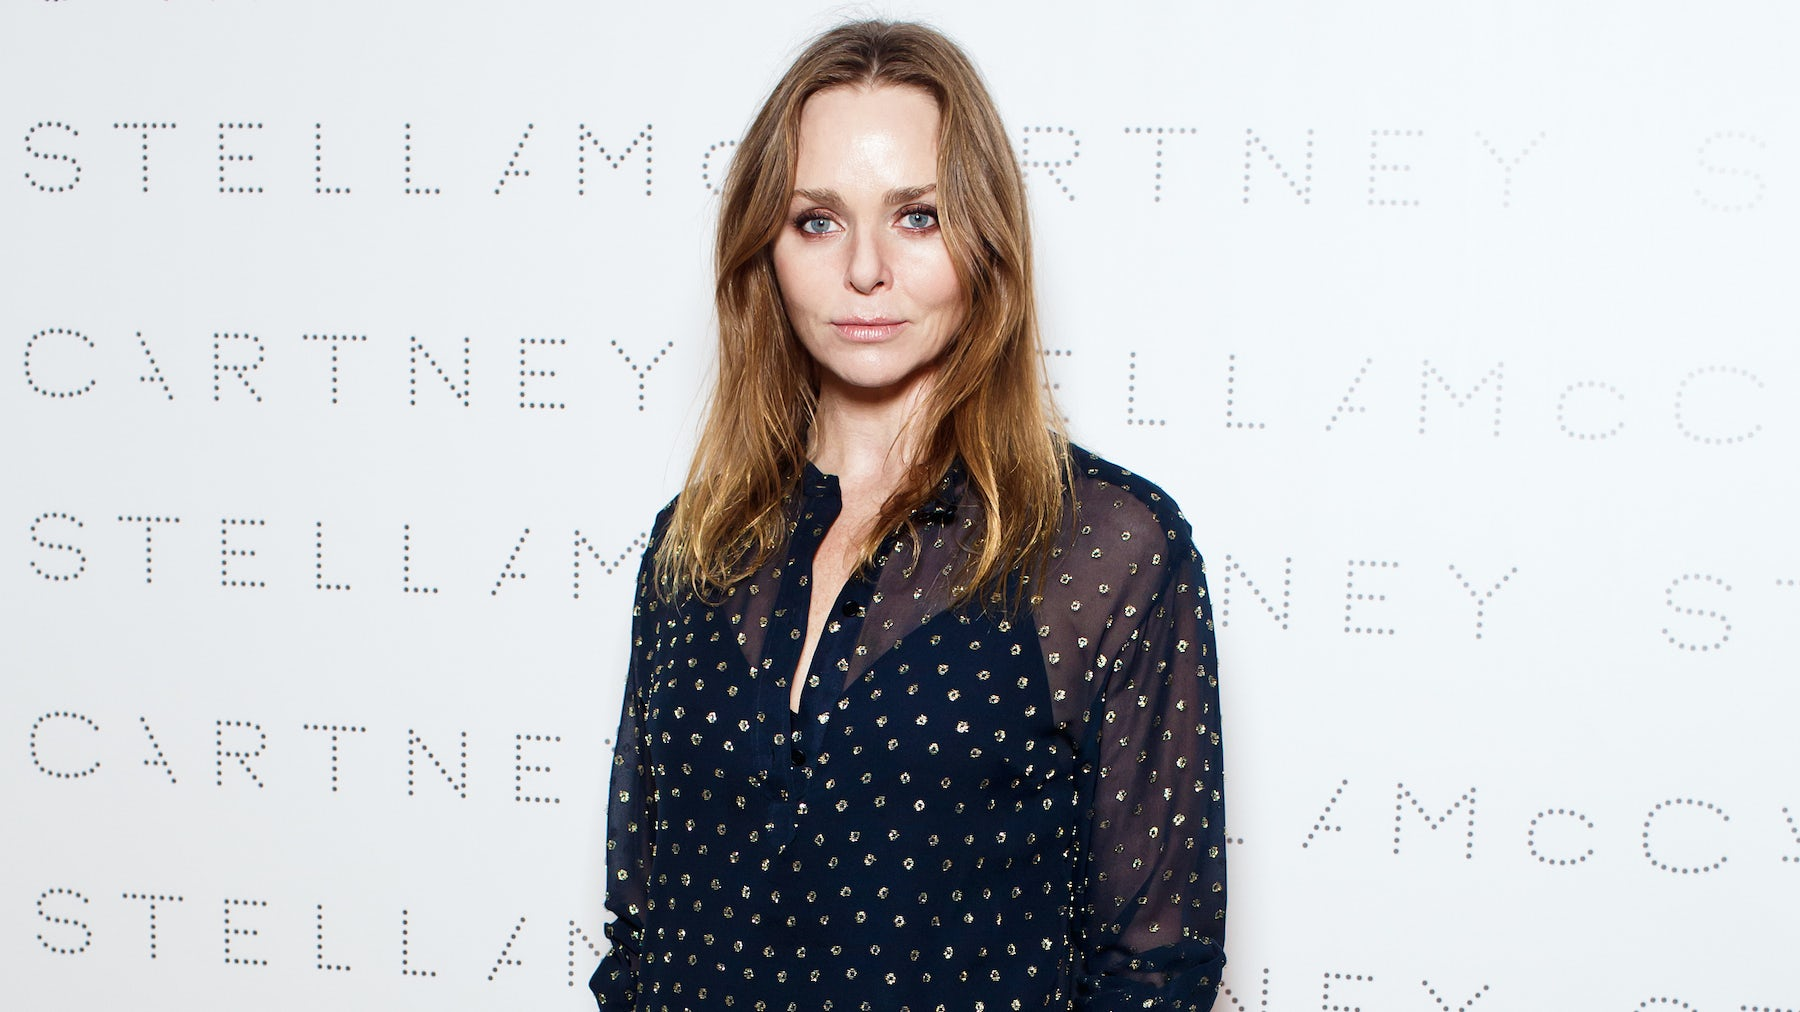 Social Goods | Stella McCartney to Use Ocean Recycled Plastic, Fashion's Glass Ceiling